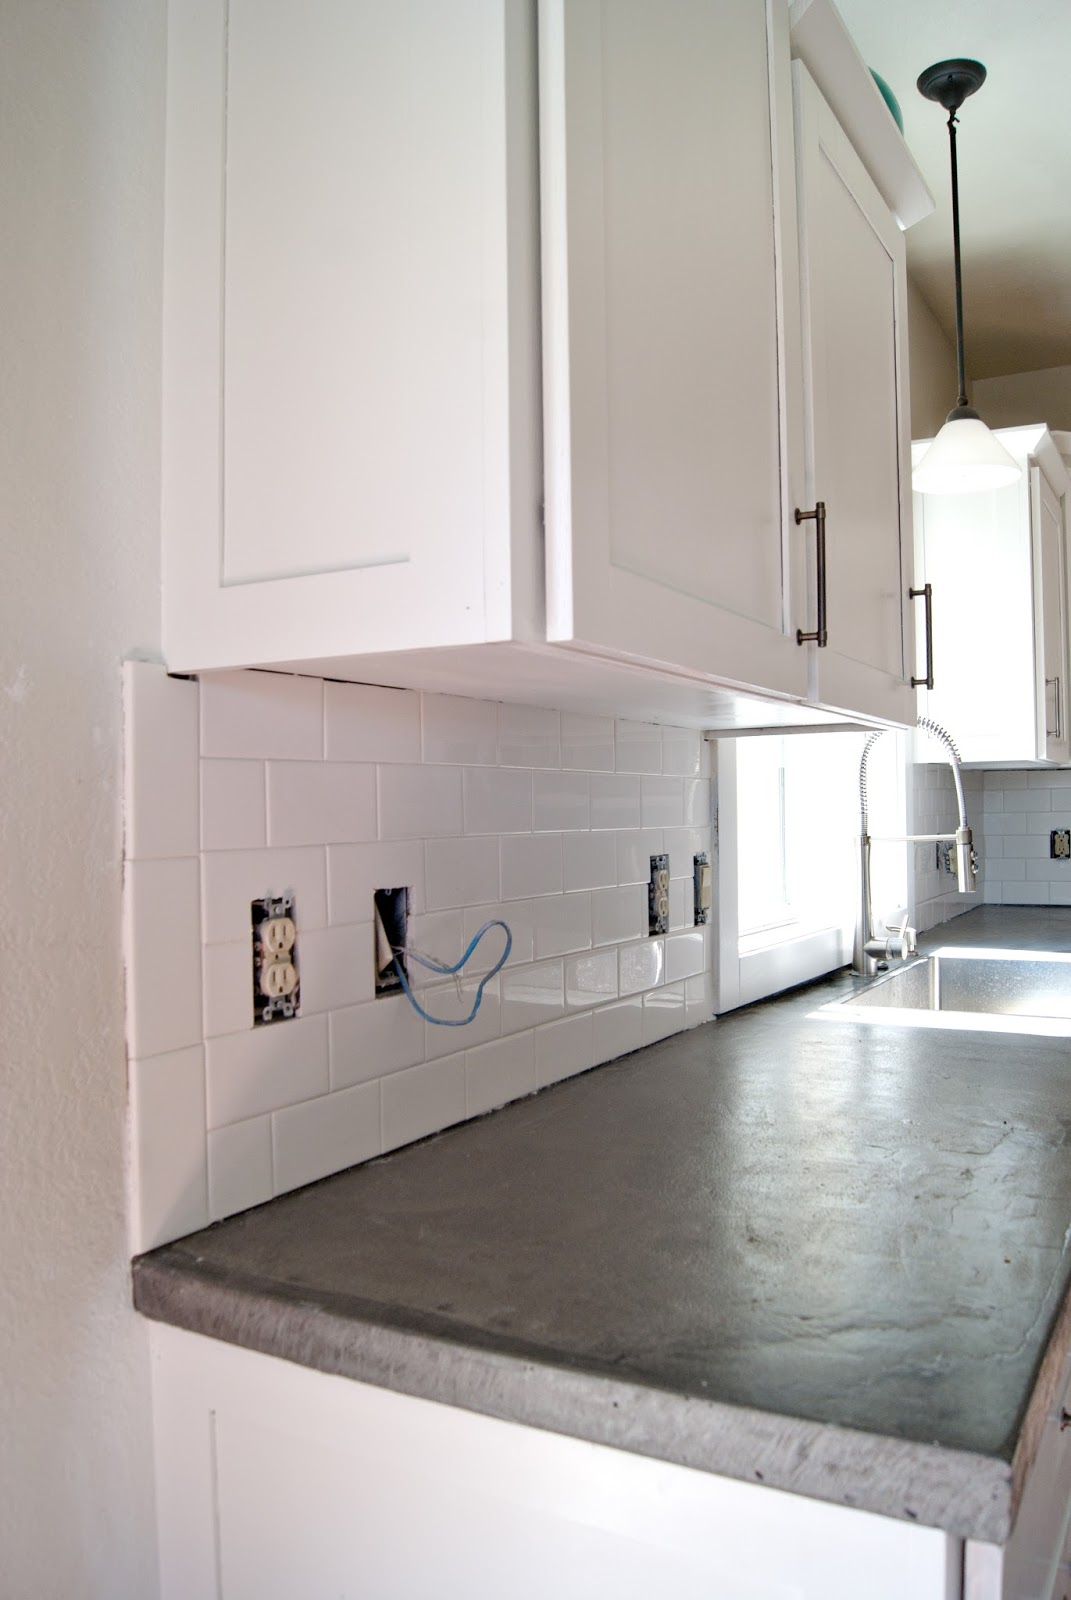 subway tile installation tips on grouting with fusion pro next